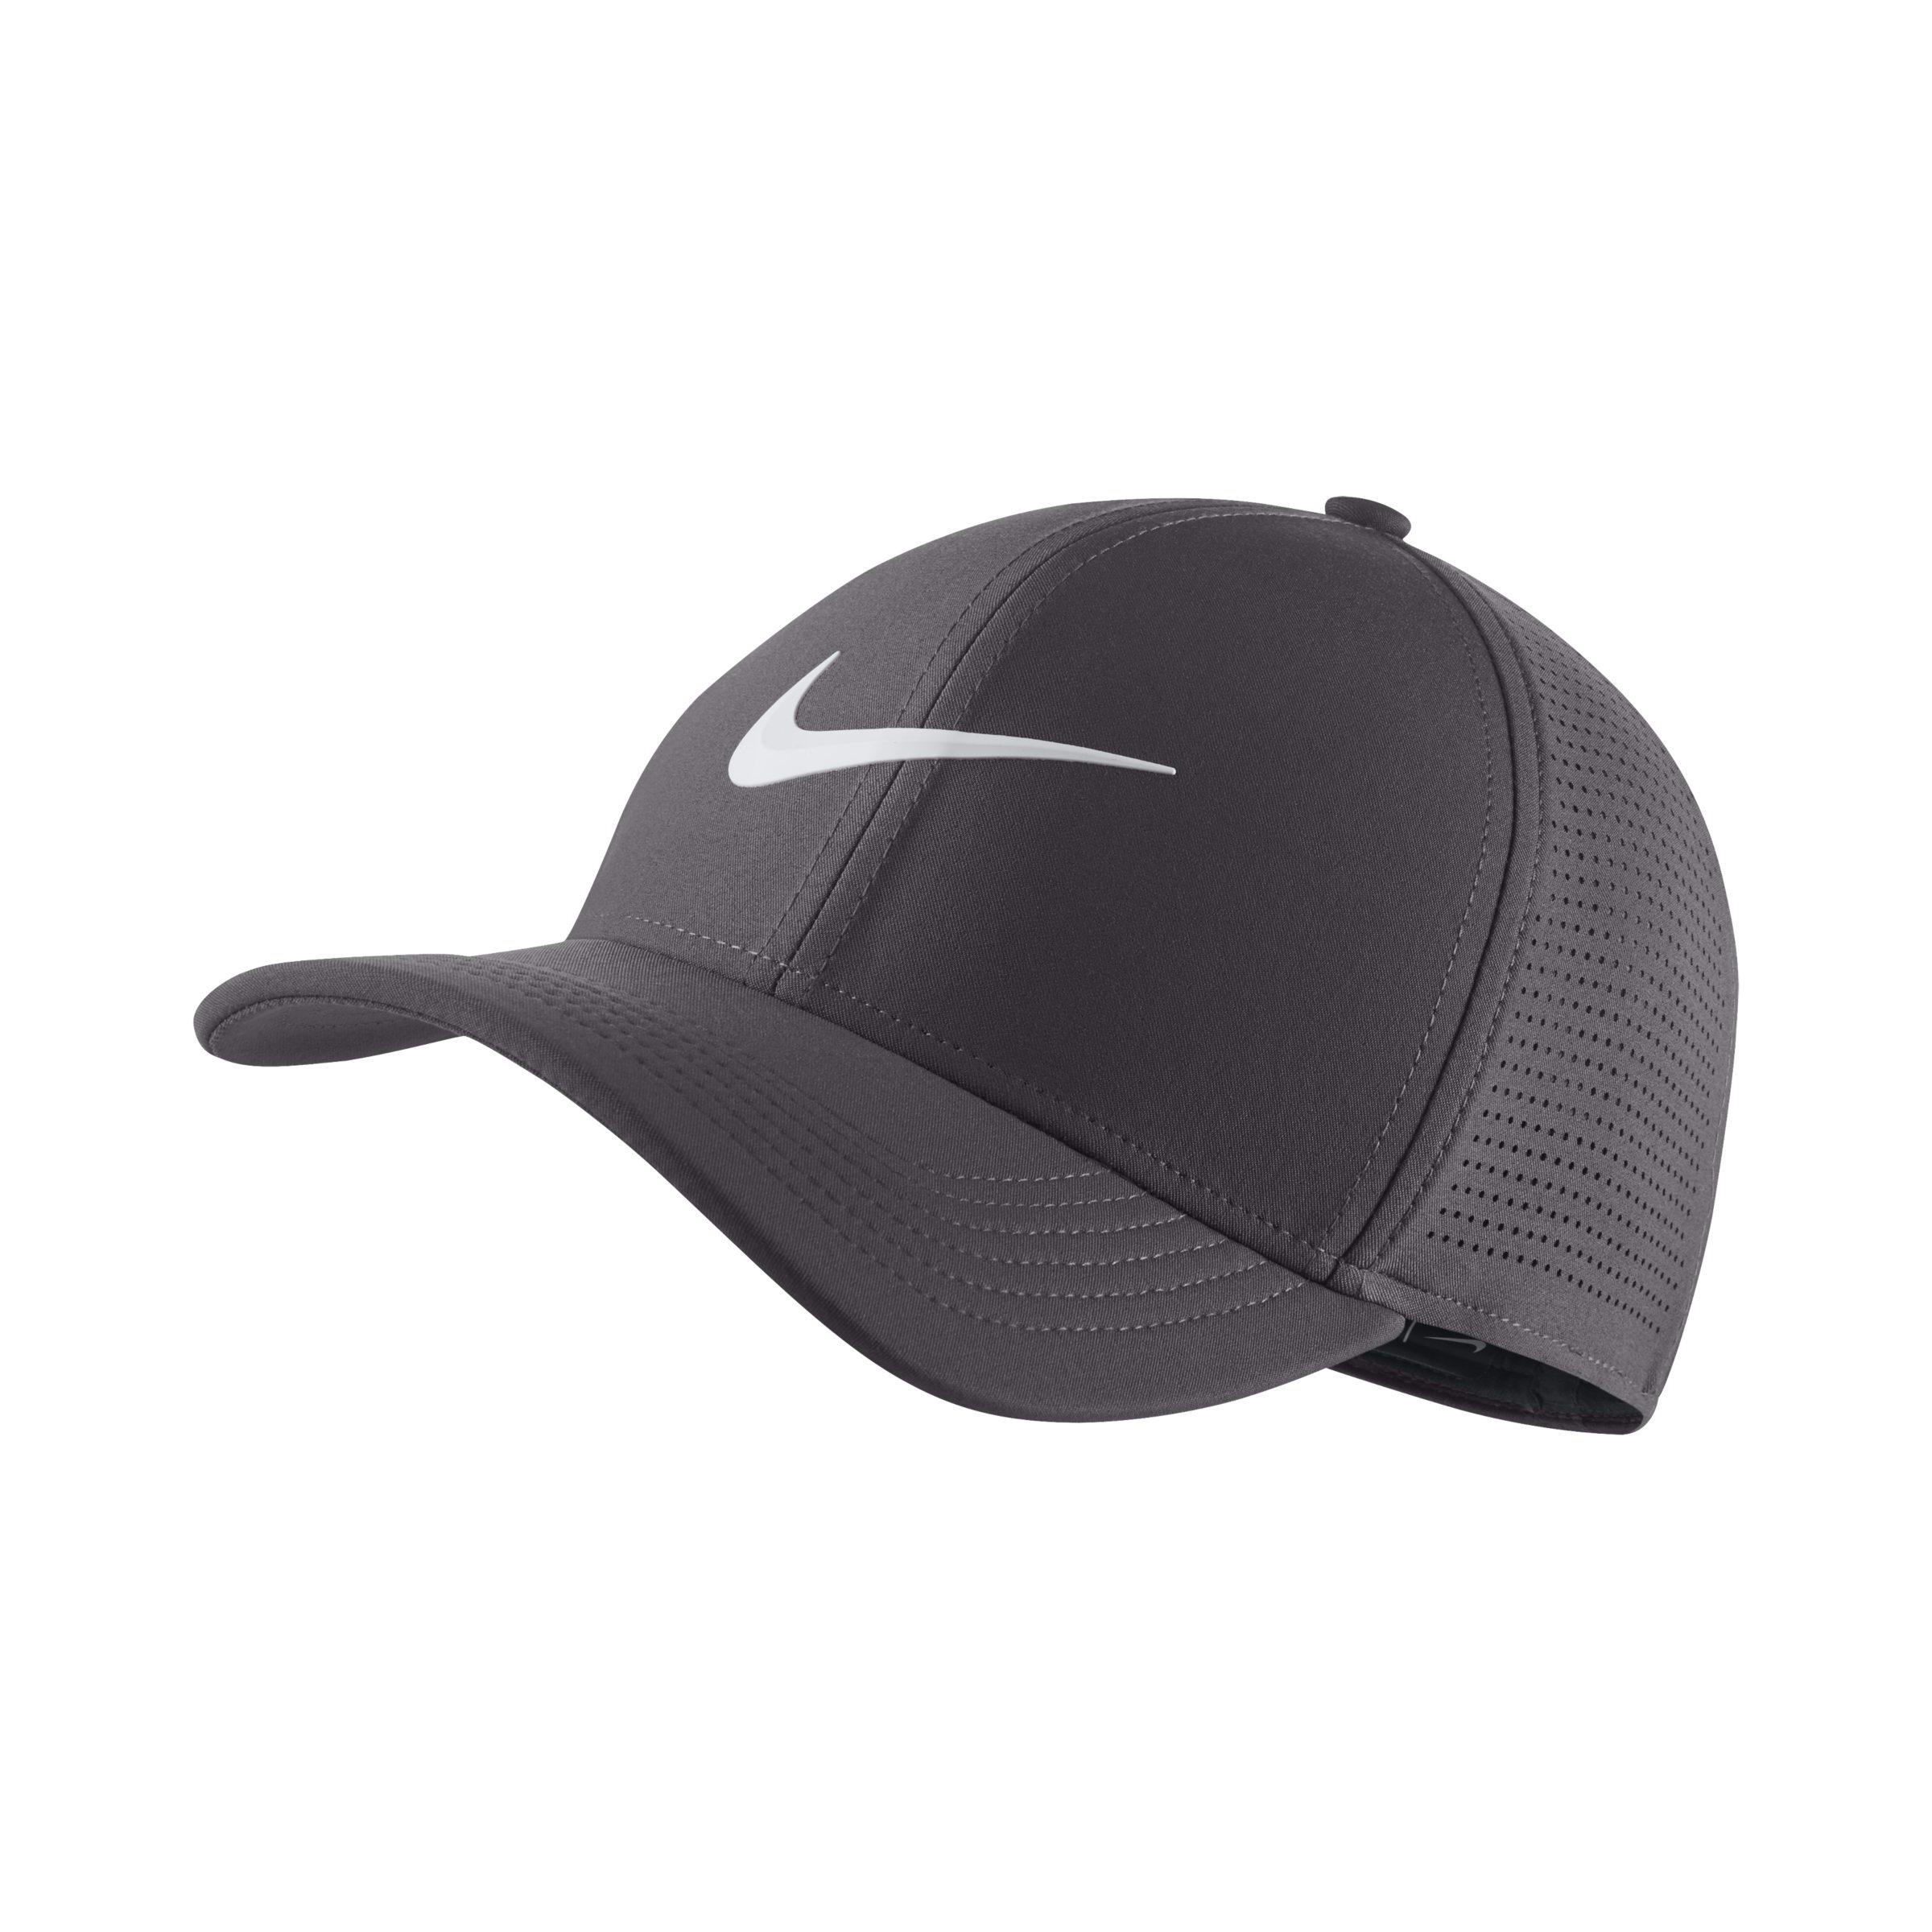 17418a82329 Nike Aerobill Classic 99 Fitted Golf Hat in Gray - Lyst